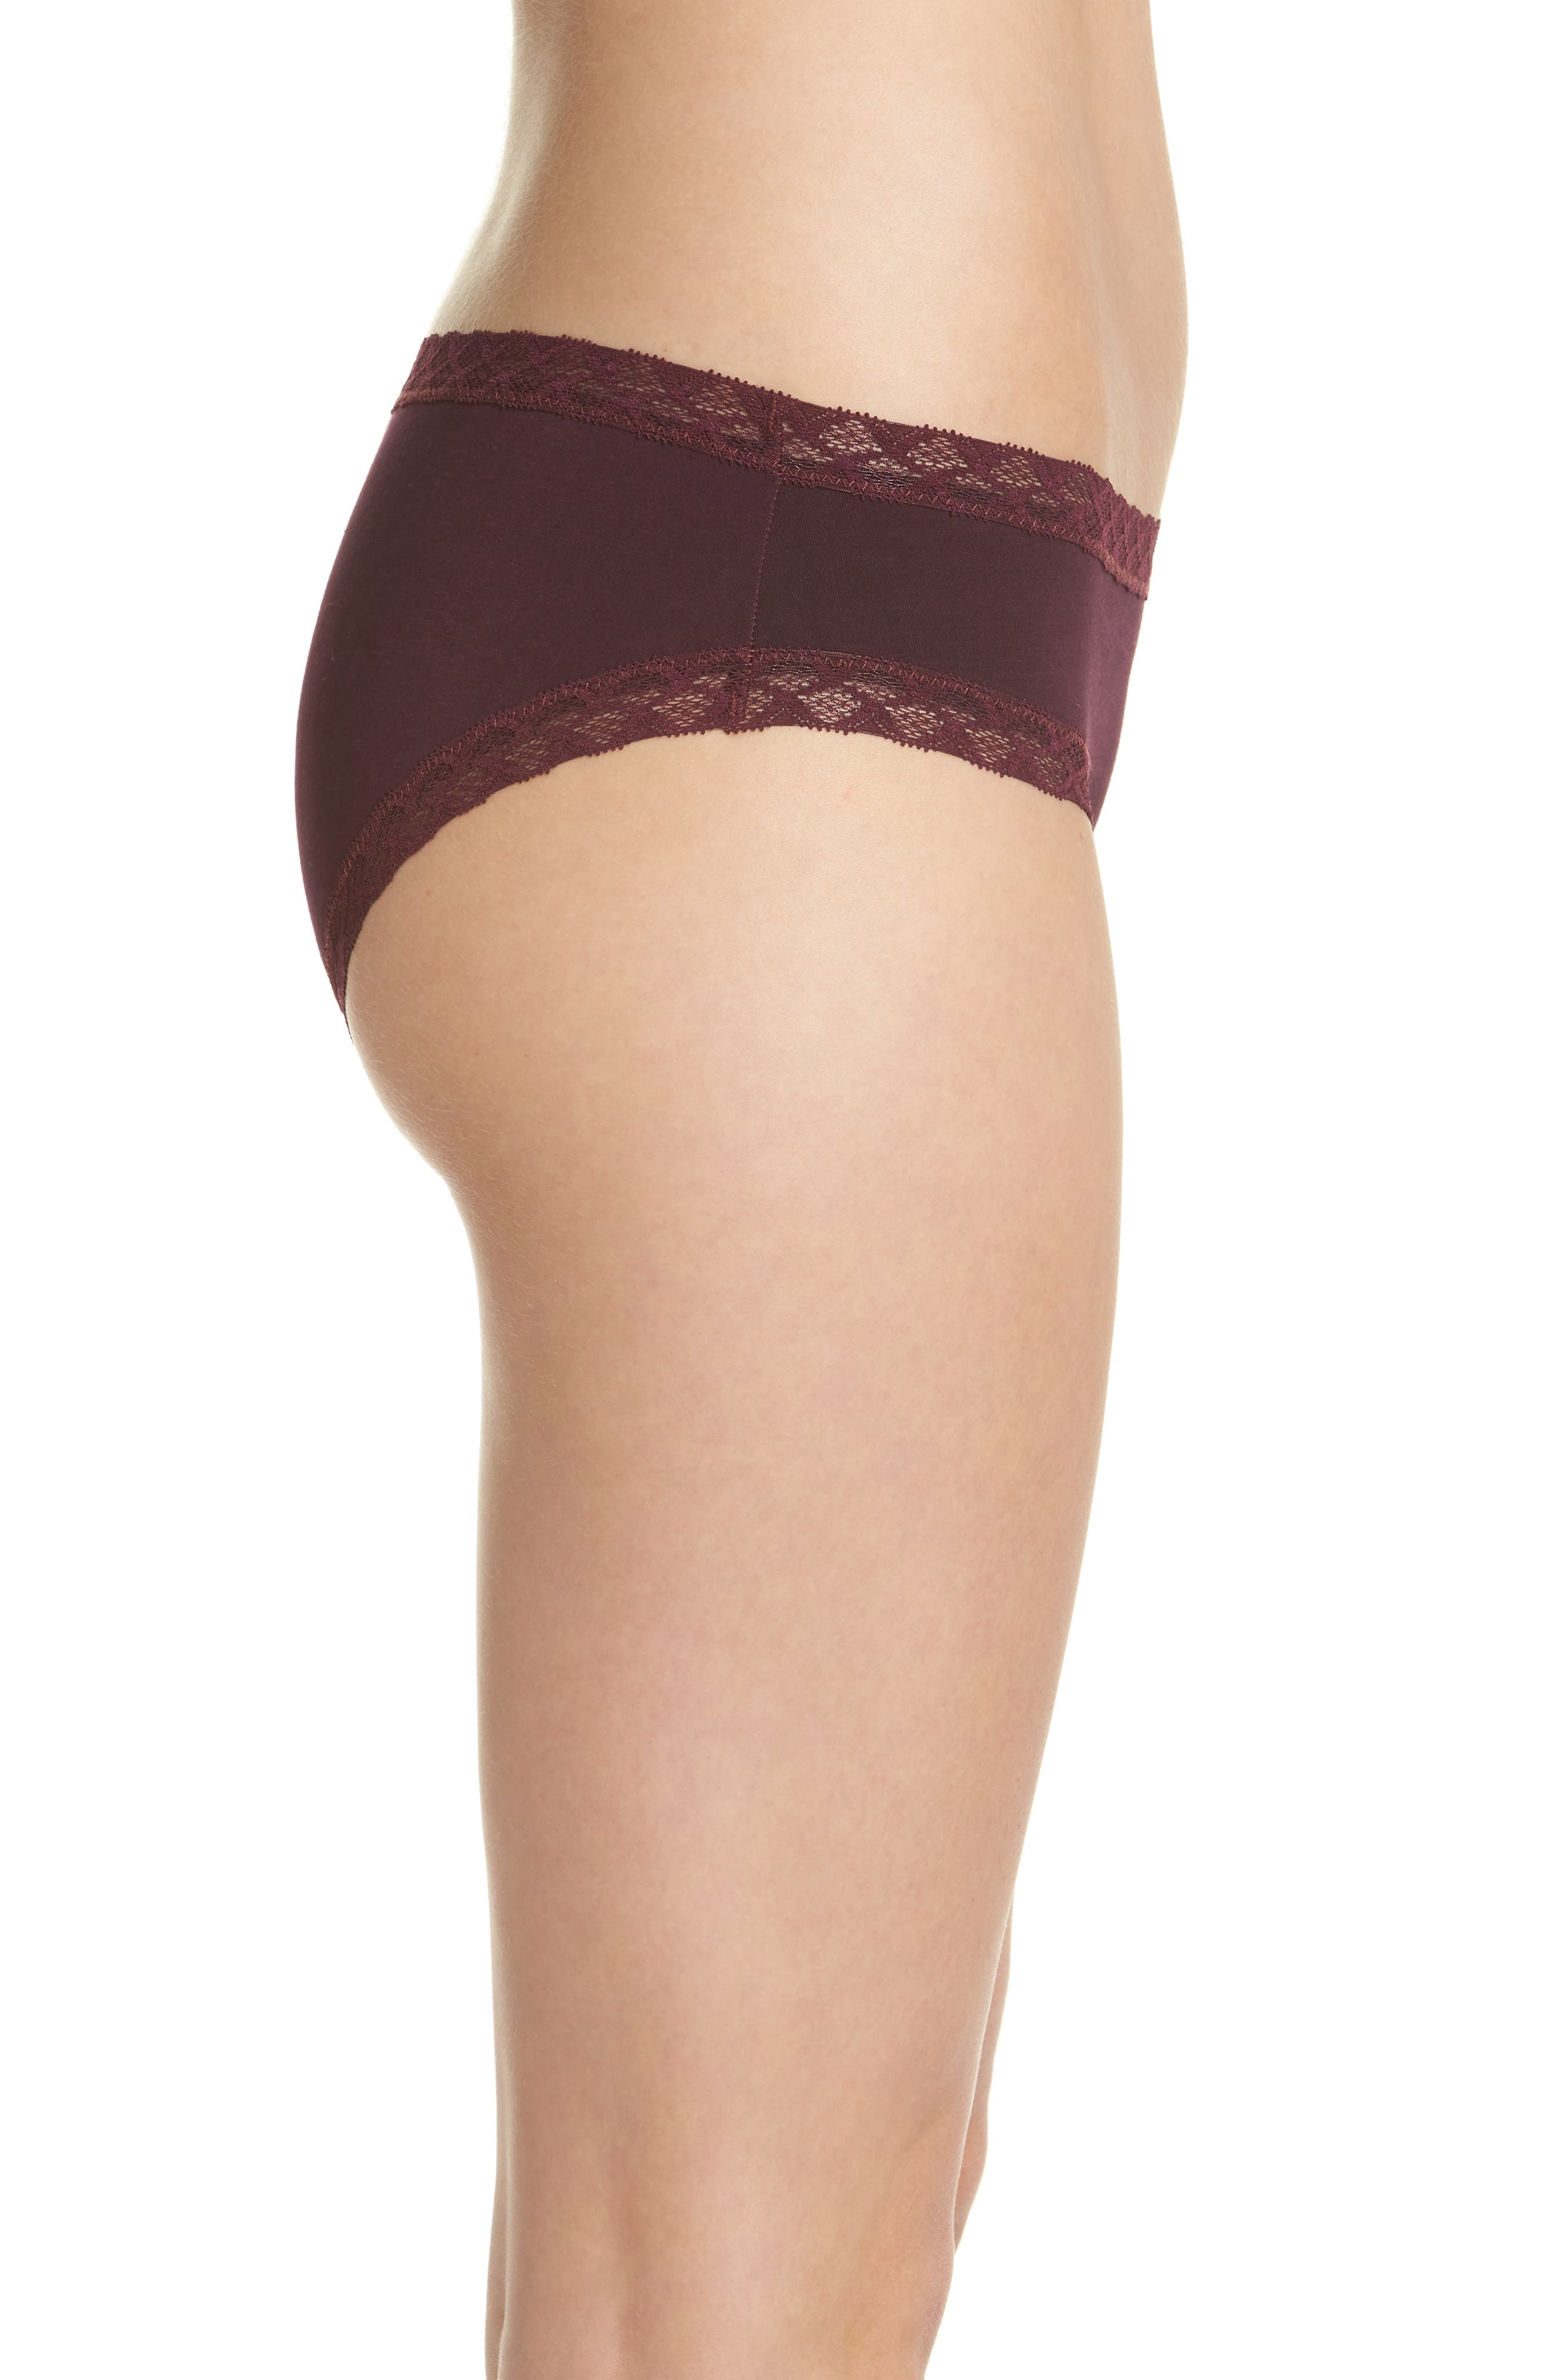 Bliss Cotton Girl Briefs,                             Alternate thumbnail 3, color,                             Potent Purple